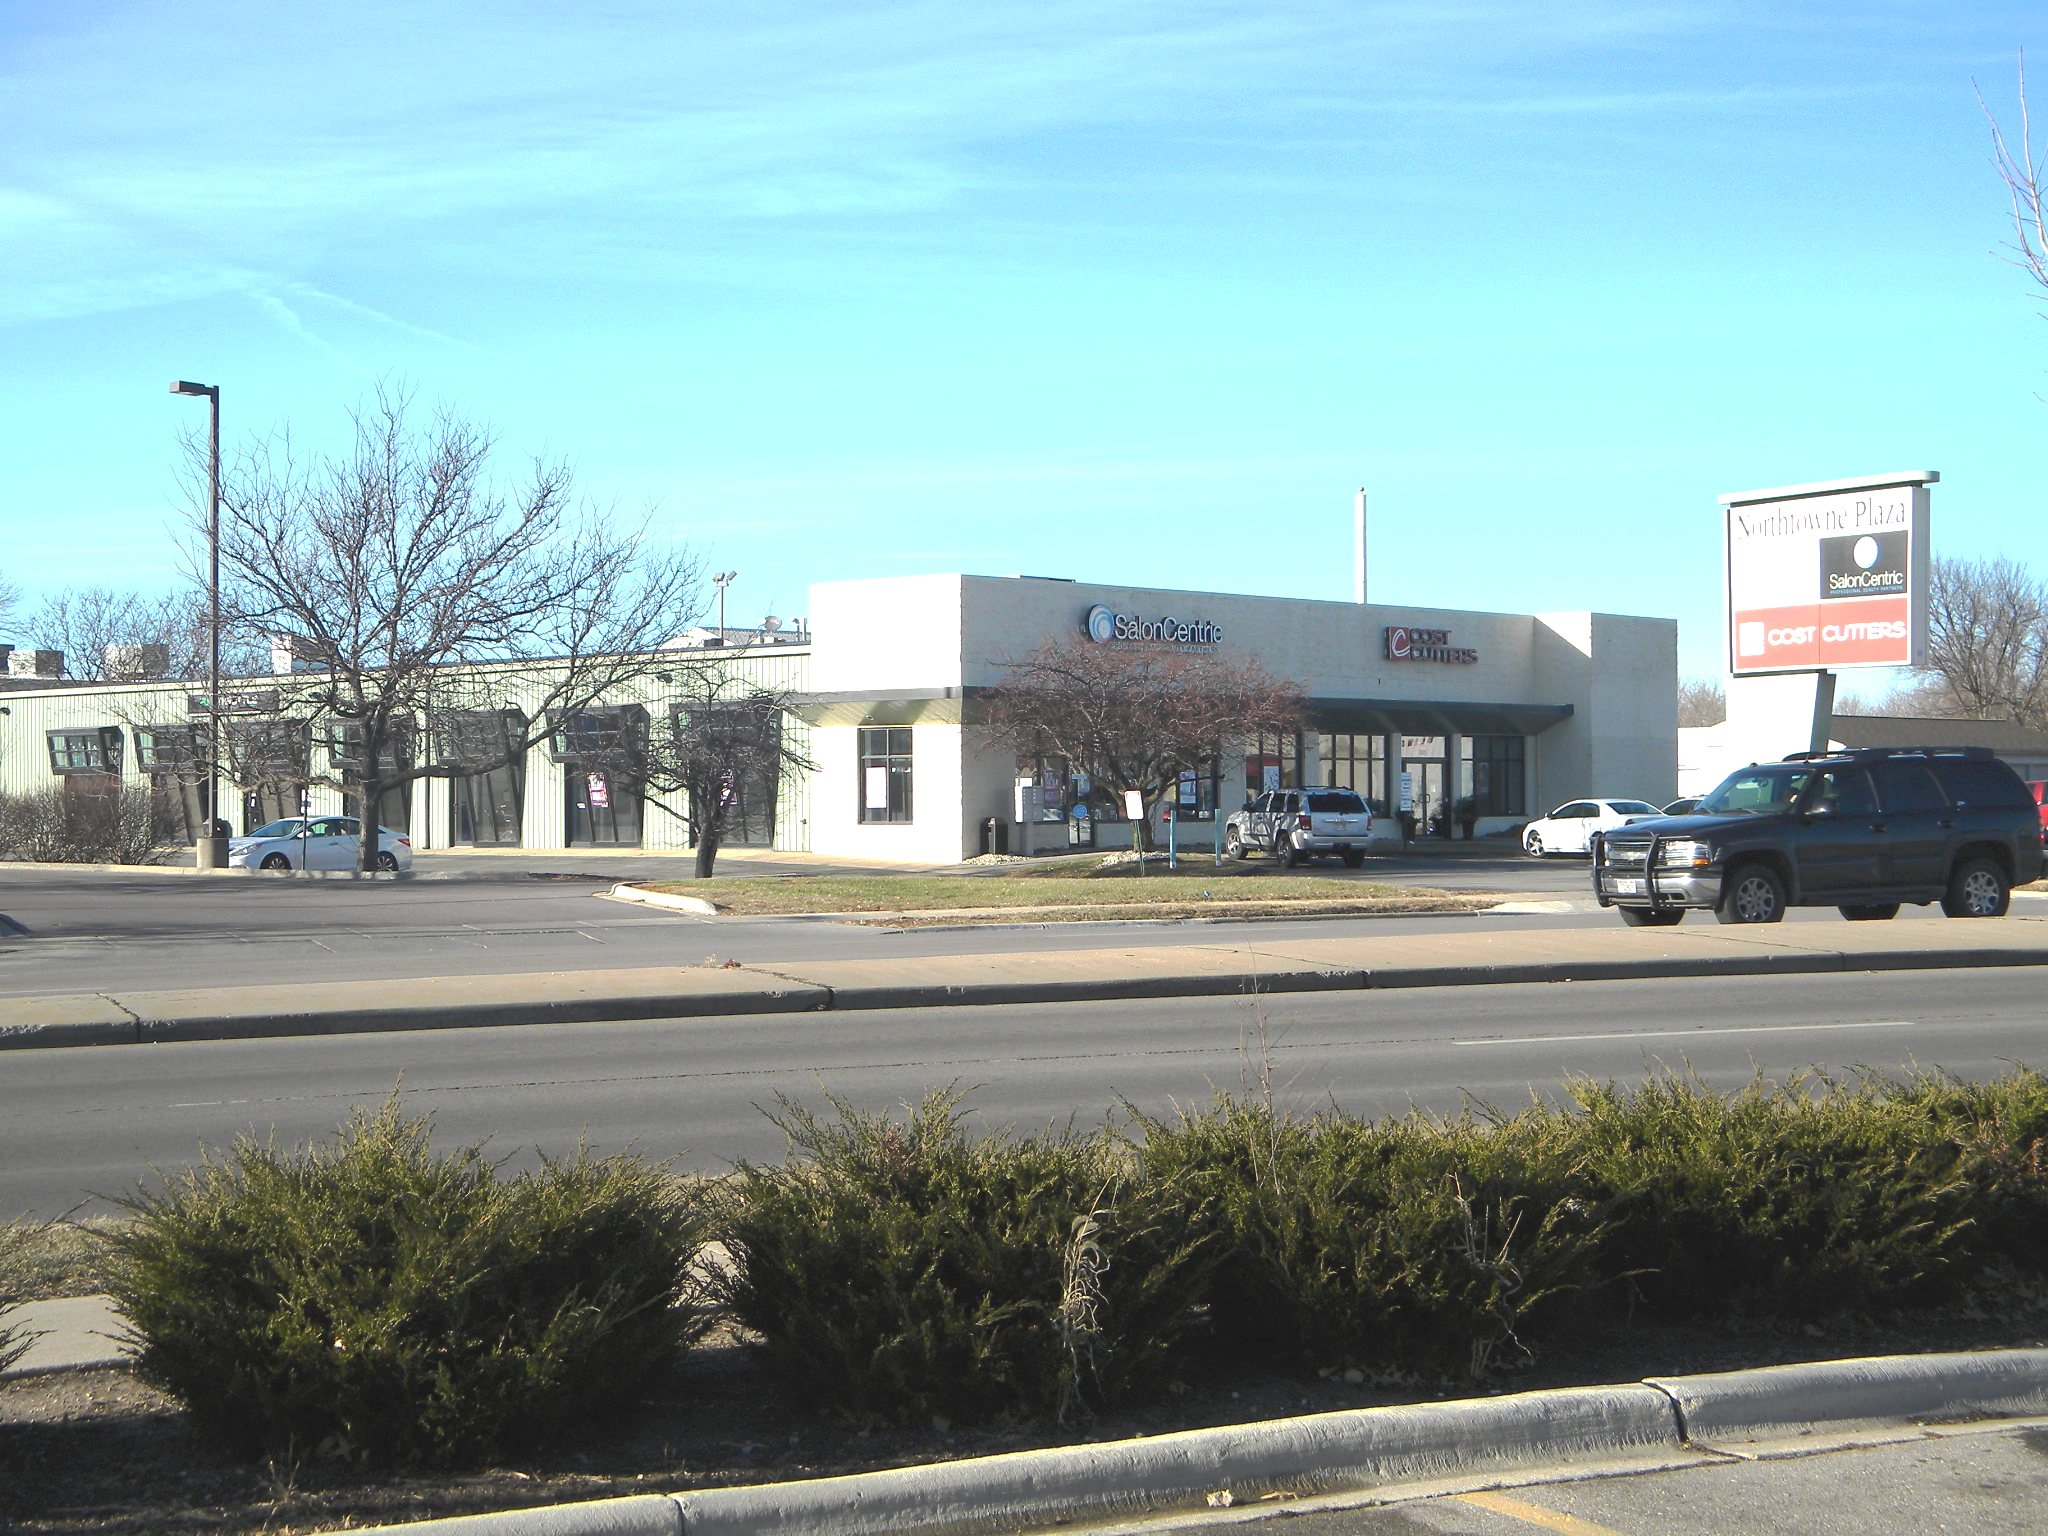 North Towne Plaza